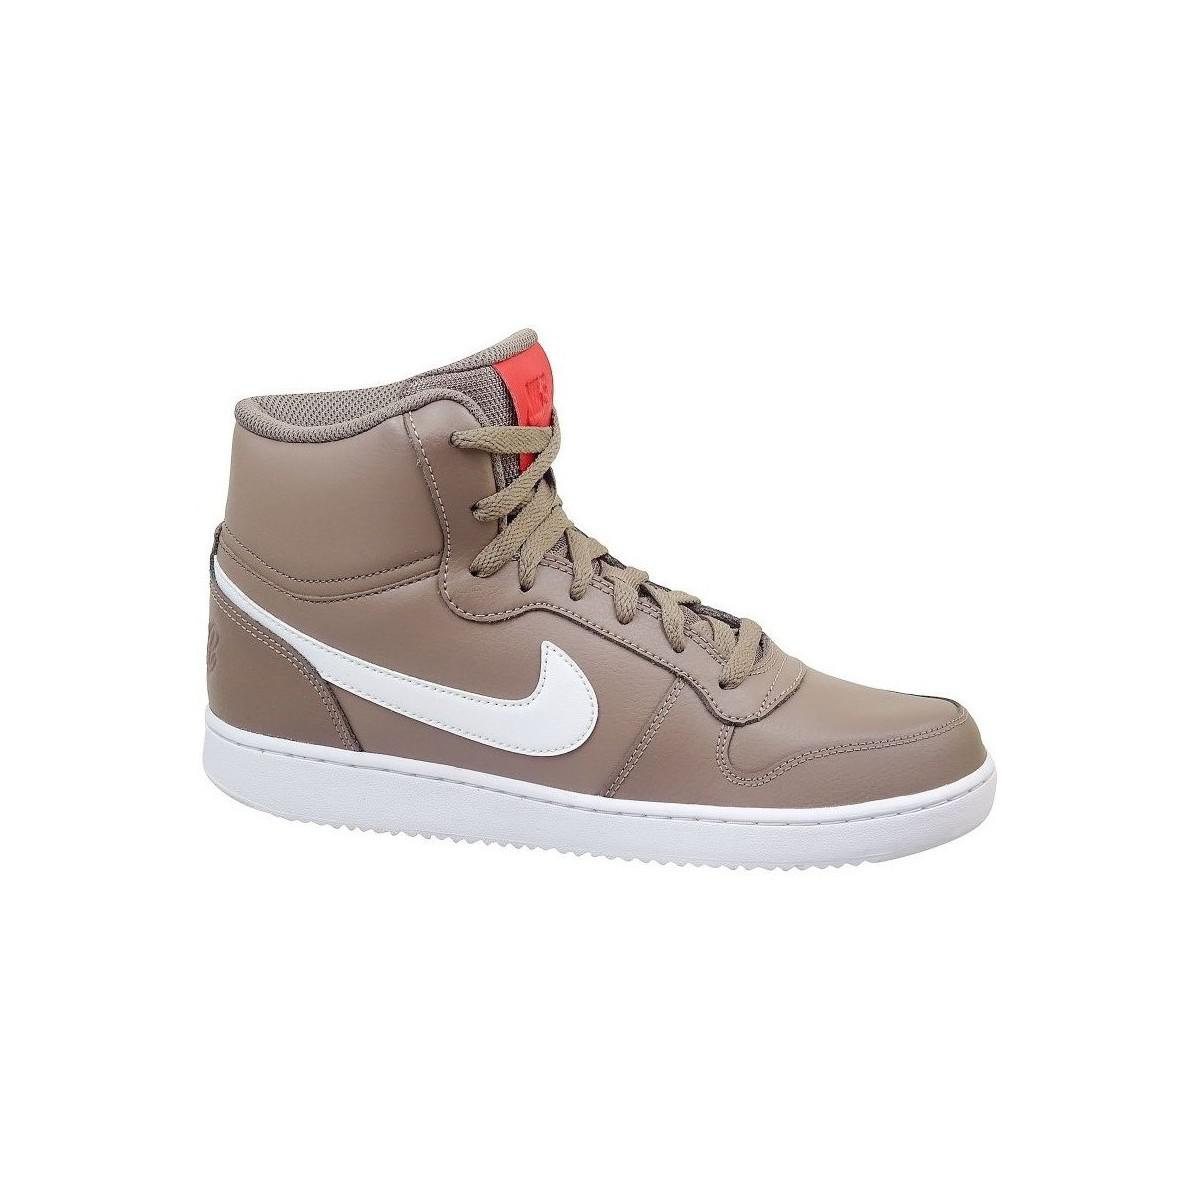 4cd54a37d60780 Nike Ebernon Mid Men s Shoes (high-top Trainers) In Multicolour for ...